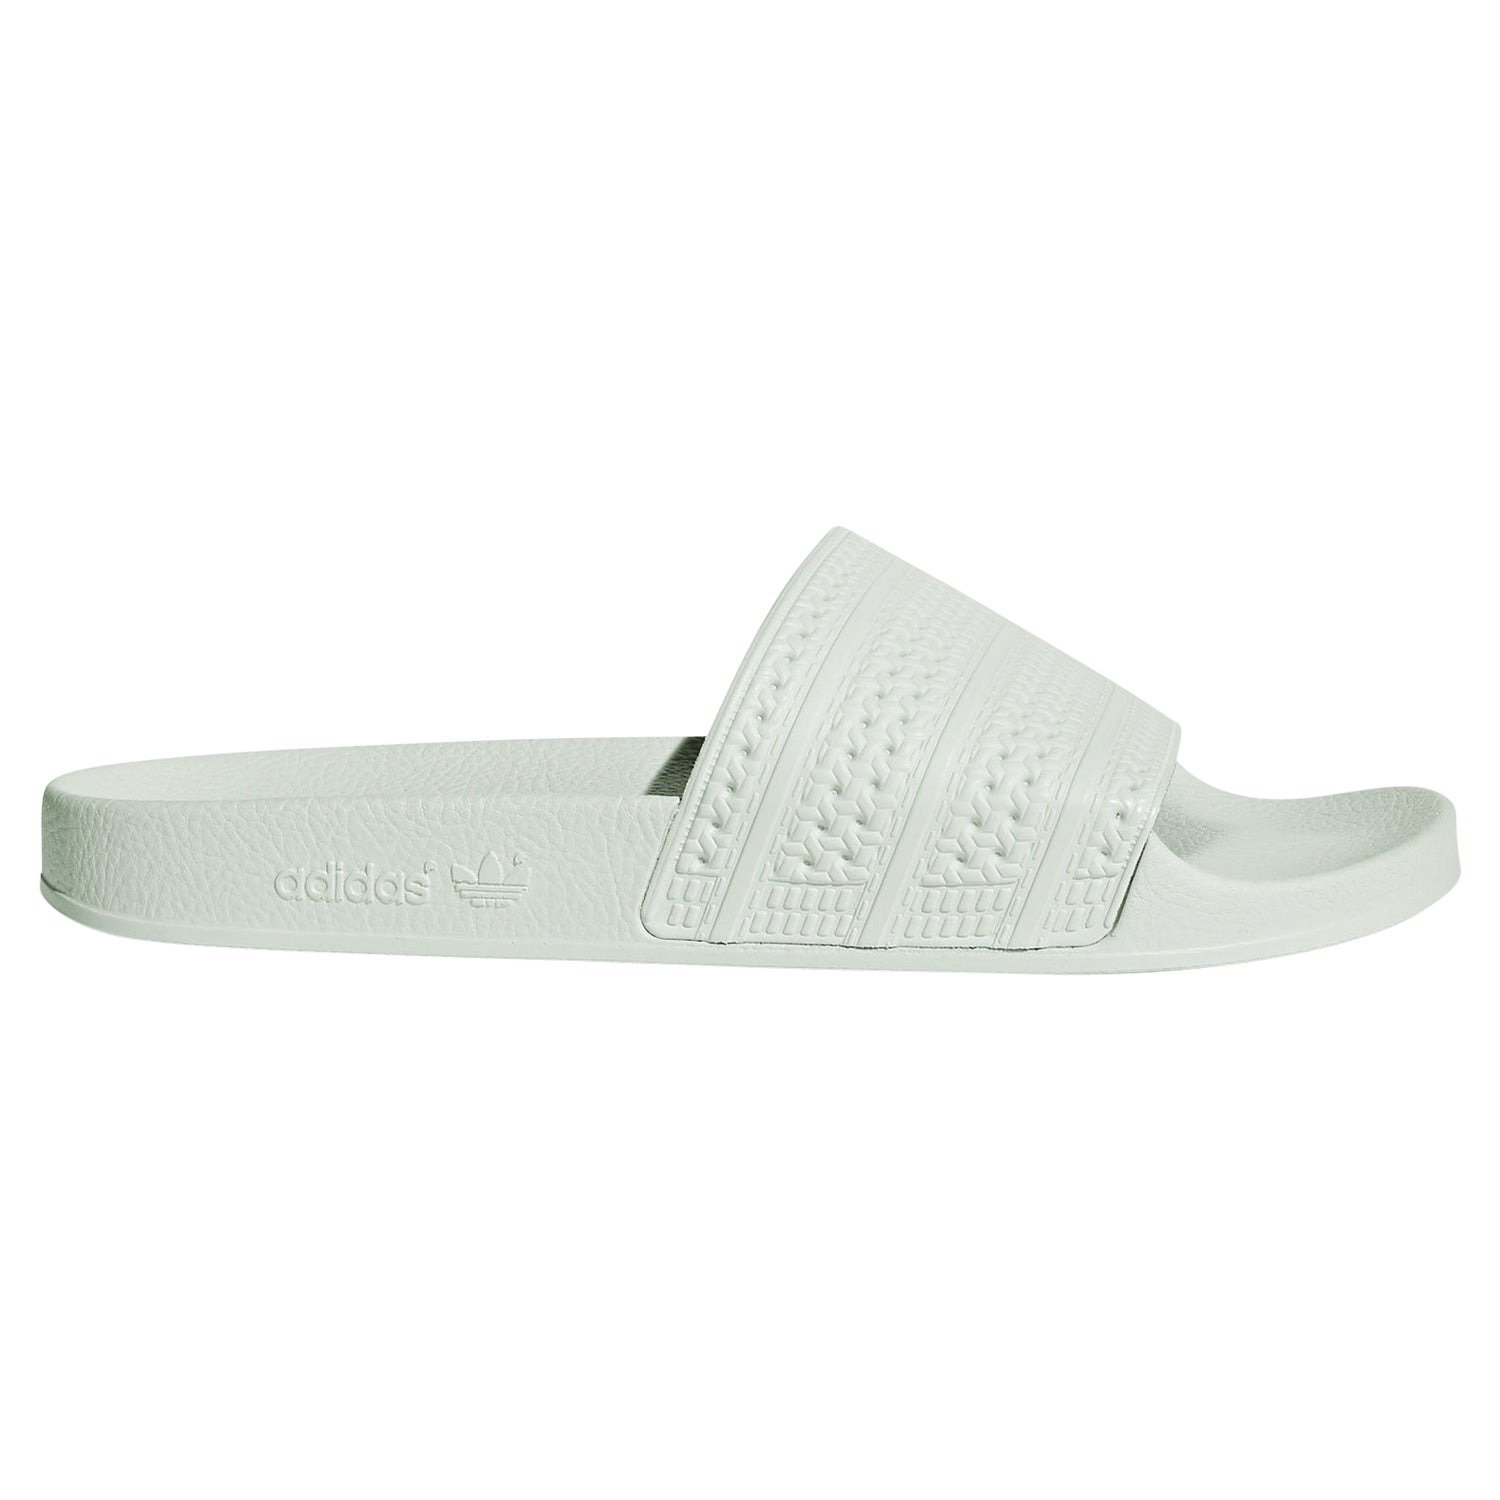 d2044cc26c54c ... tradesports.co.uk adidas Originals Adilette Slides Green Main Image ...